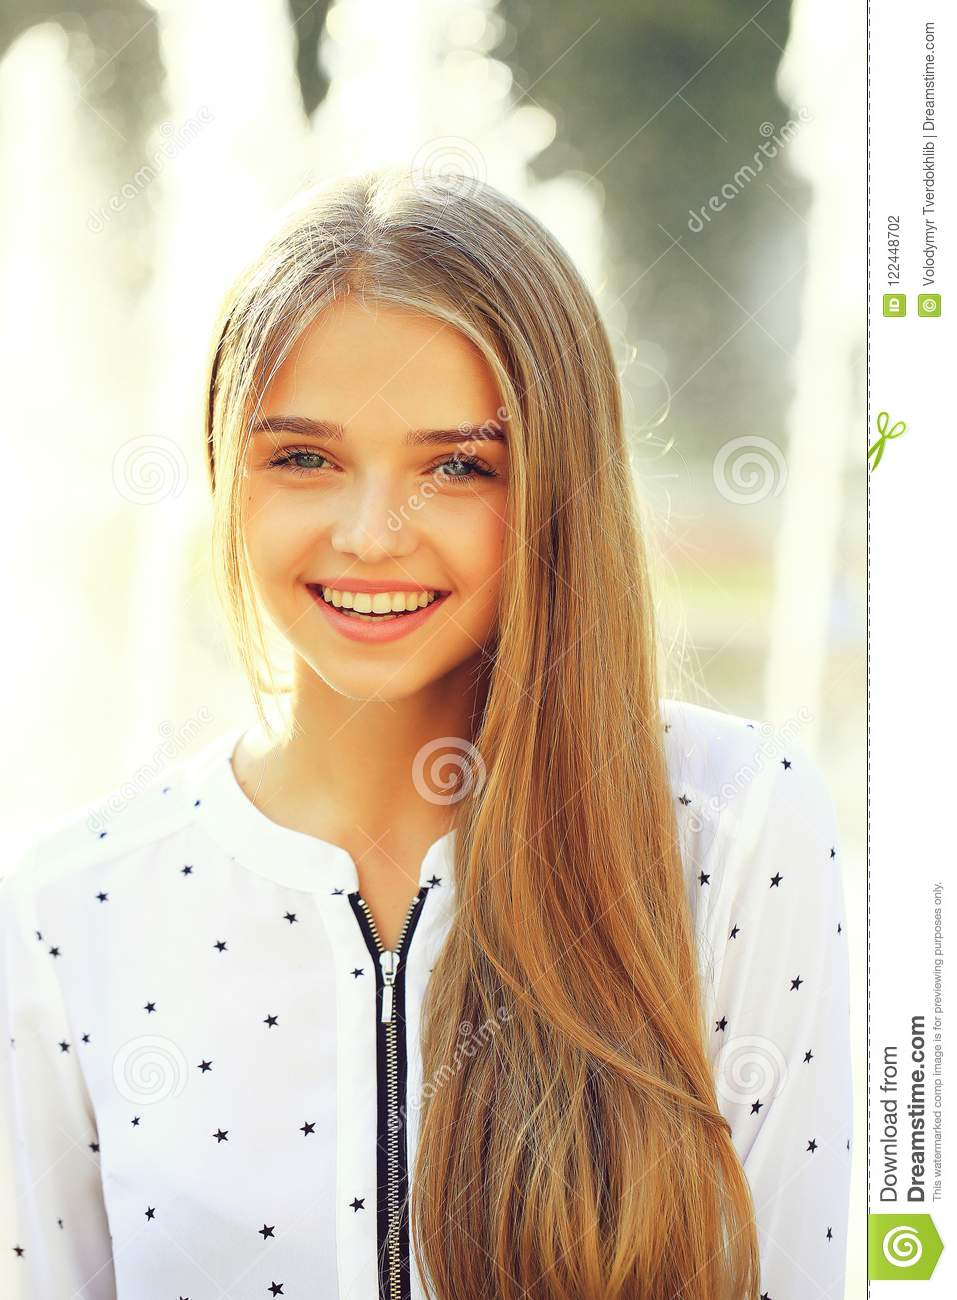 Blonde Cute Girl On Sunny Day Stock Photo Image Of White Cute 122448702